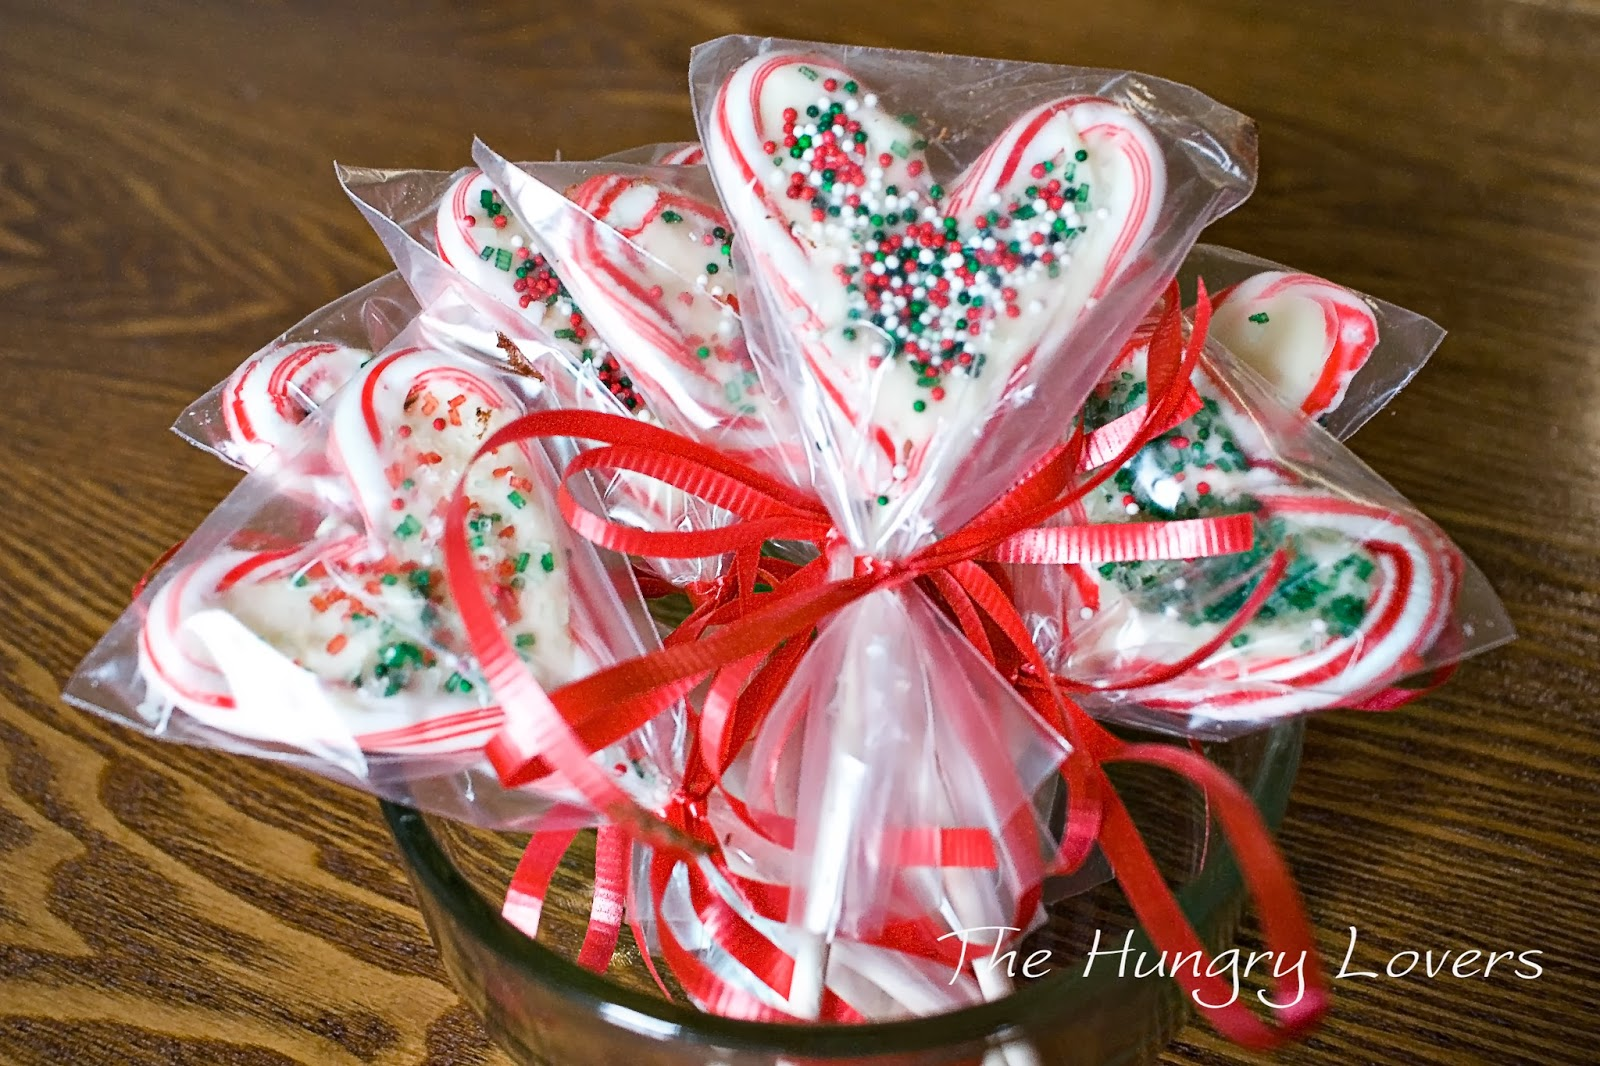 The Hungry Lovers Candy Cane Lollipops